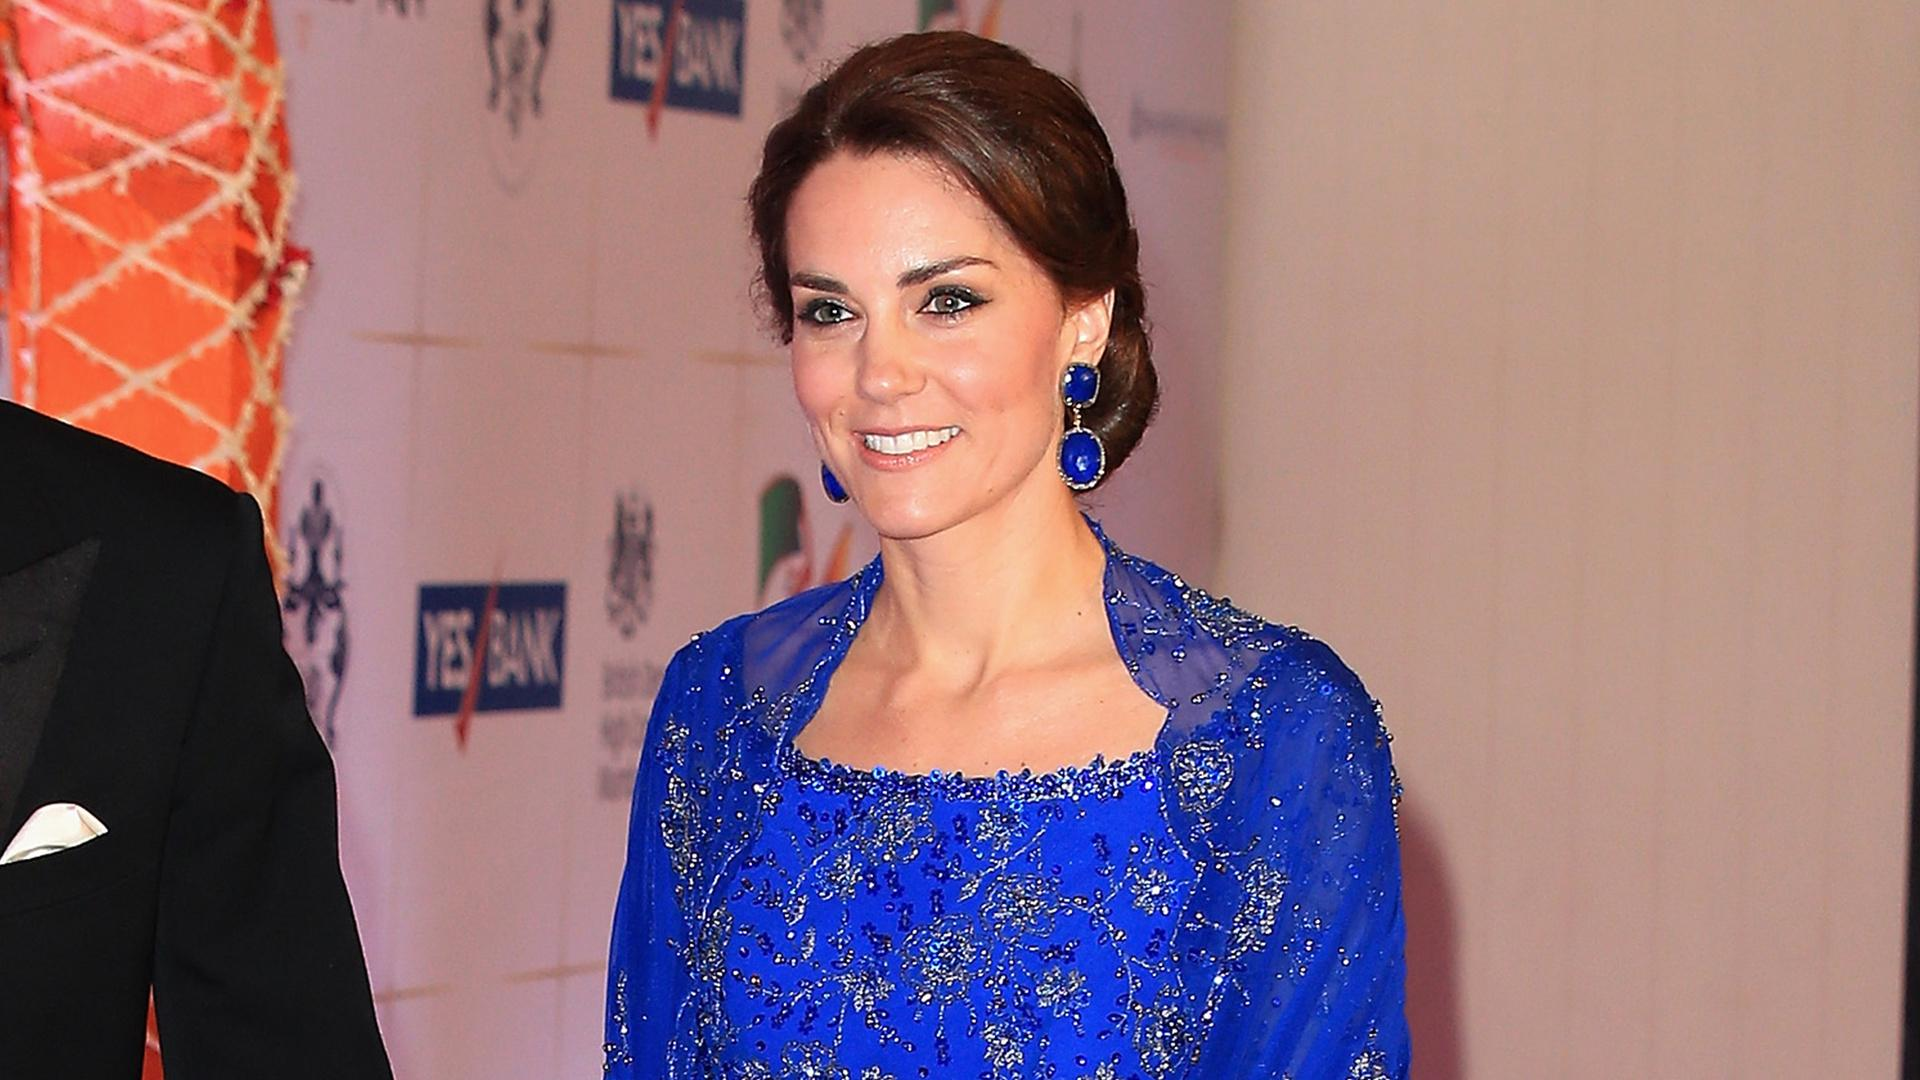 Kate Middleton's Best Looks of All Time